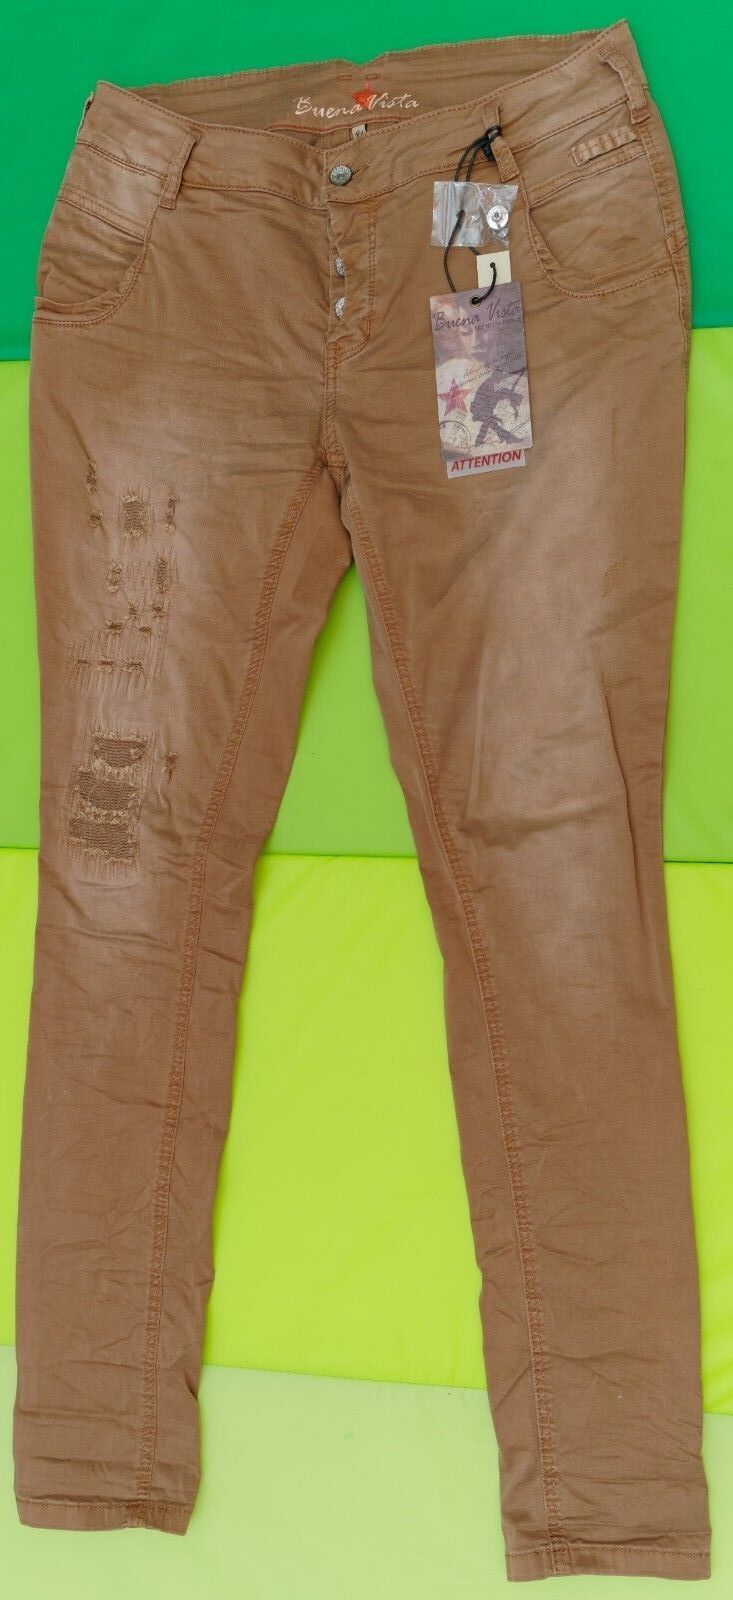 Buena Vista Jeans Bea Twill Gr S Stretch 702 camel hell braun used Look